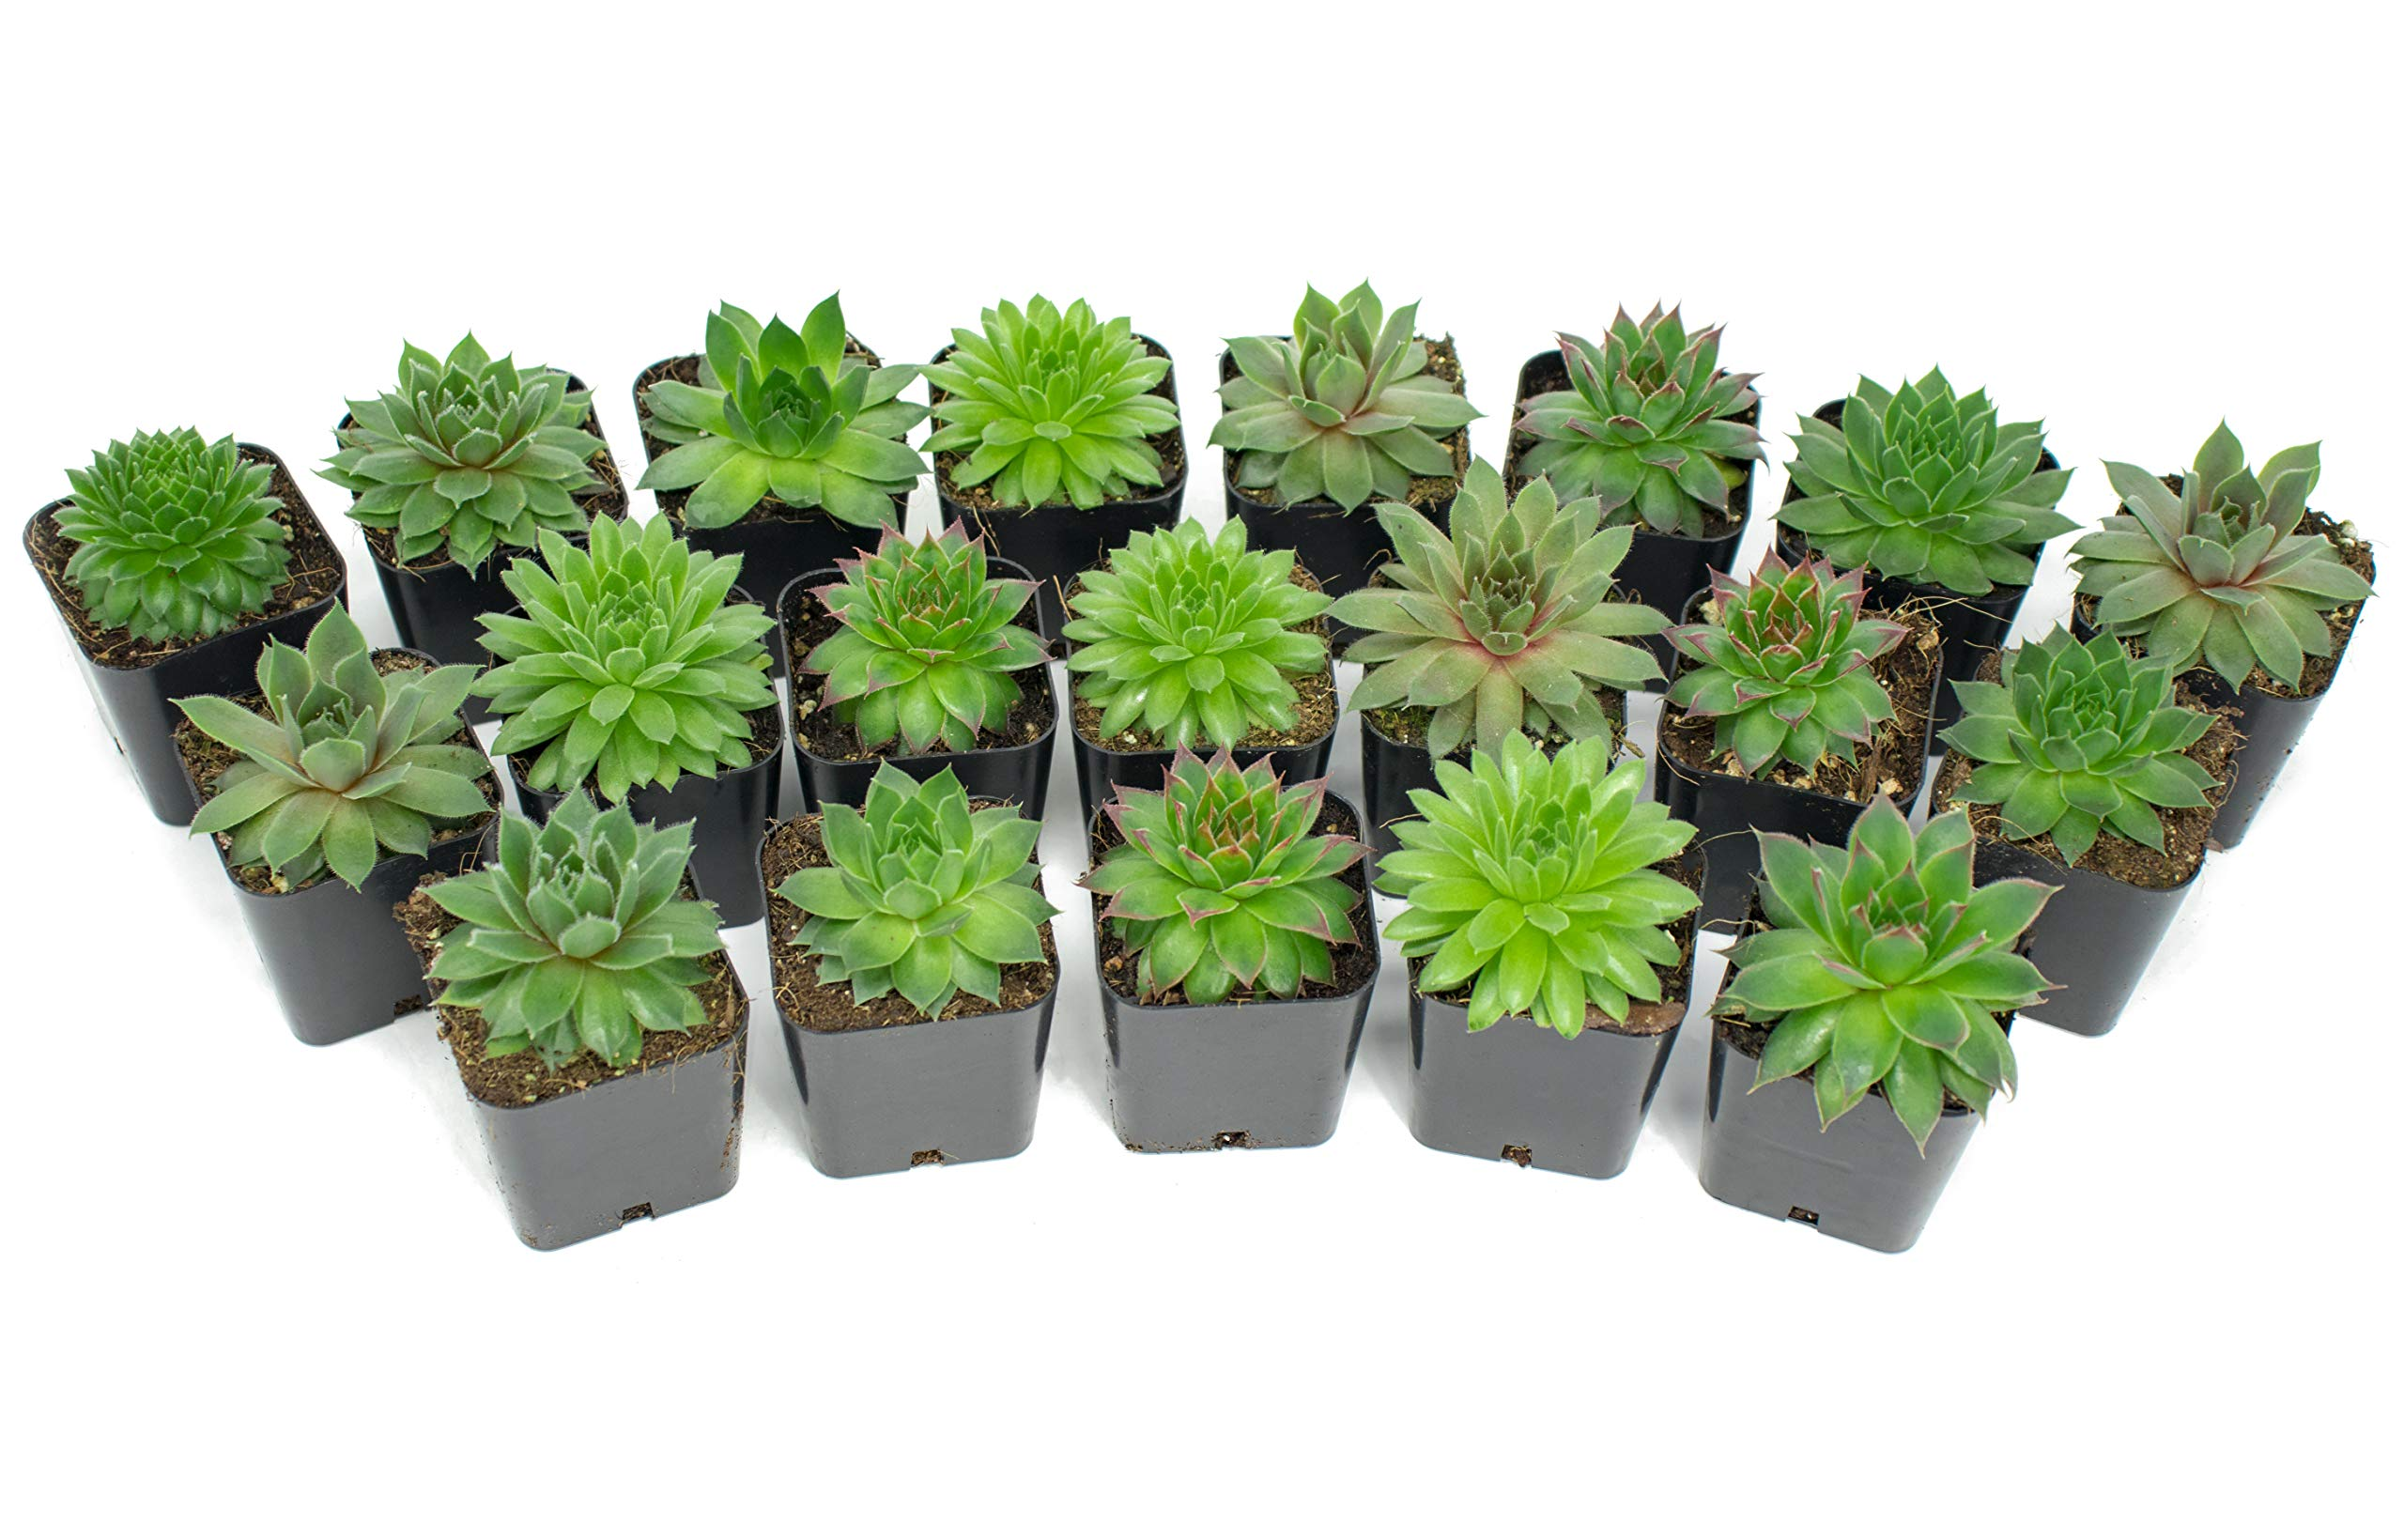 Succulent Plants | 20 Sempervivum Succulents | Rooted in Planter Pots with Soil | Real Live Indoor Plants | Gifts or Room Decor by Plants for Pets